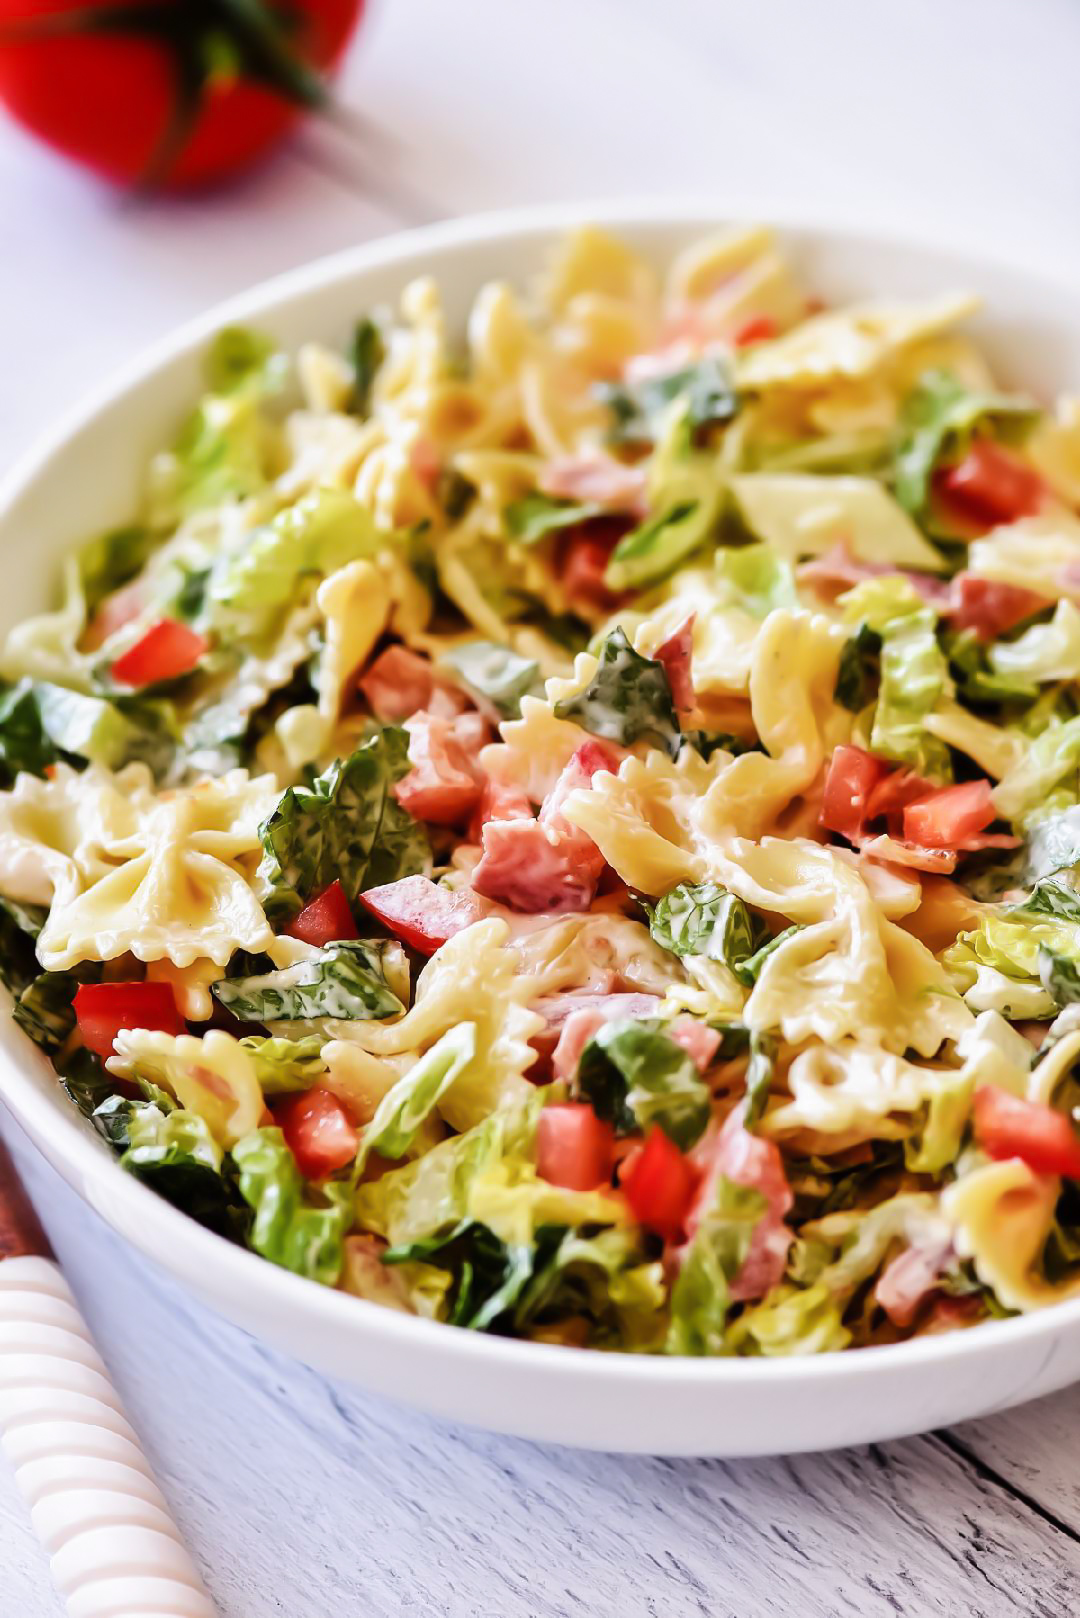 BLT Pasta Salad is filled with bacon, lettuce and tomato. It also includes pasta all covered in a creamy ranch dressing. Life-in-the-Lofthouse.com